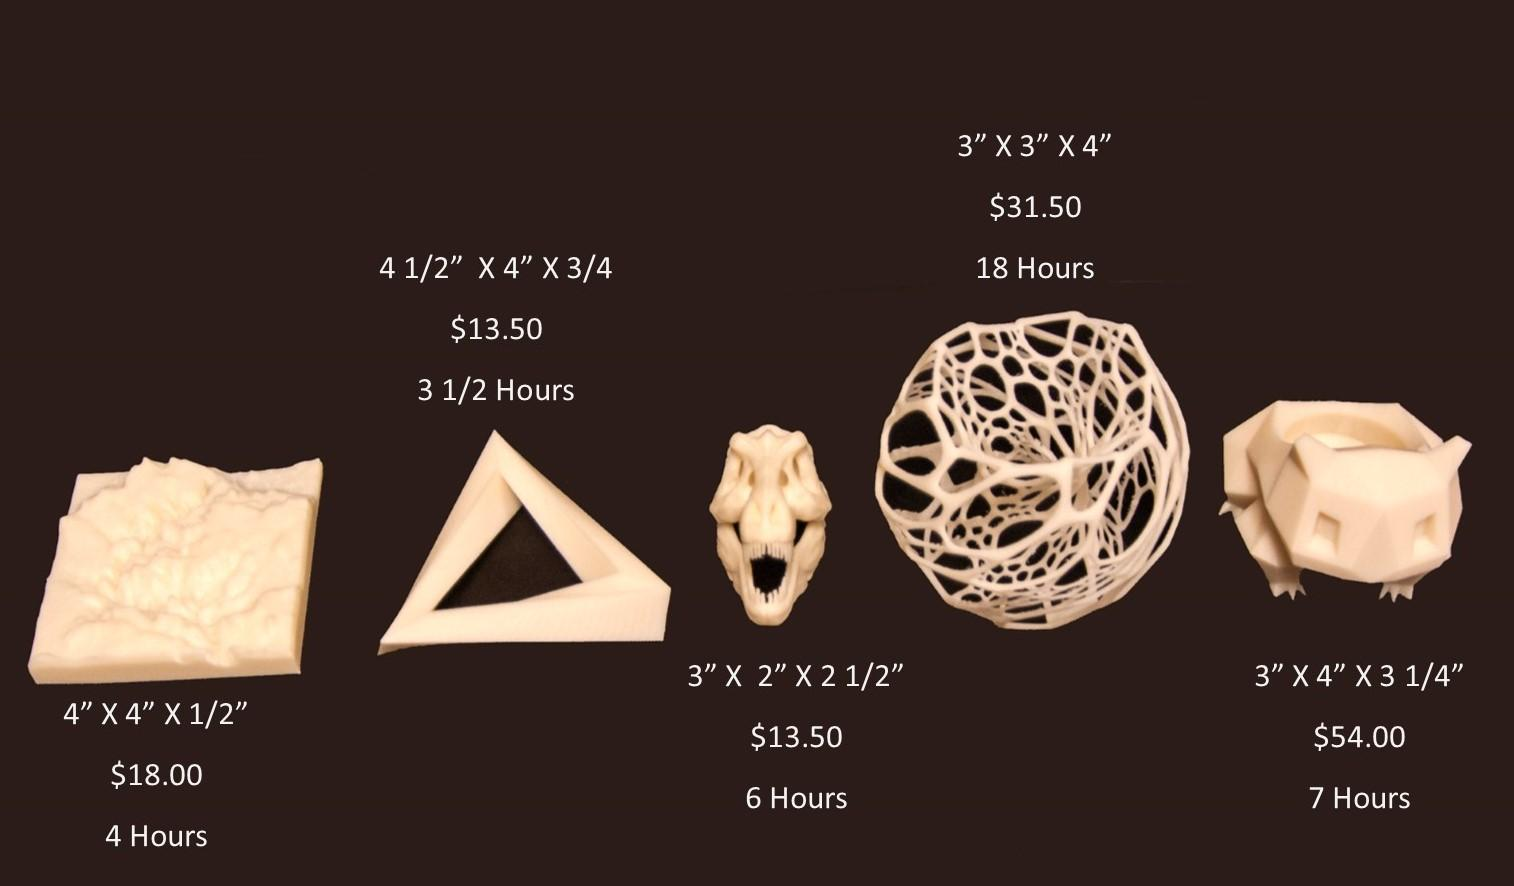 Example of 3D print jobs and their costs.